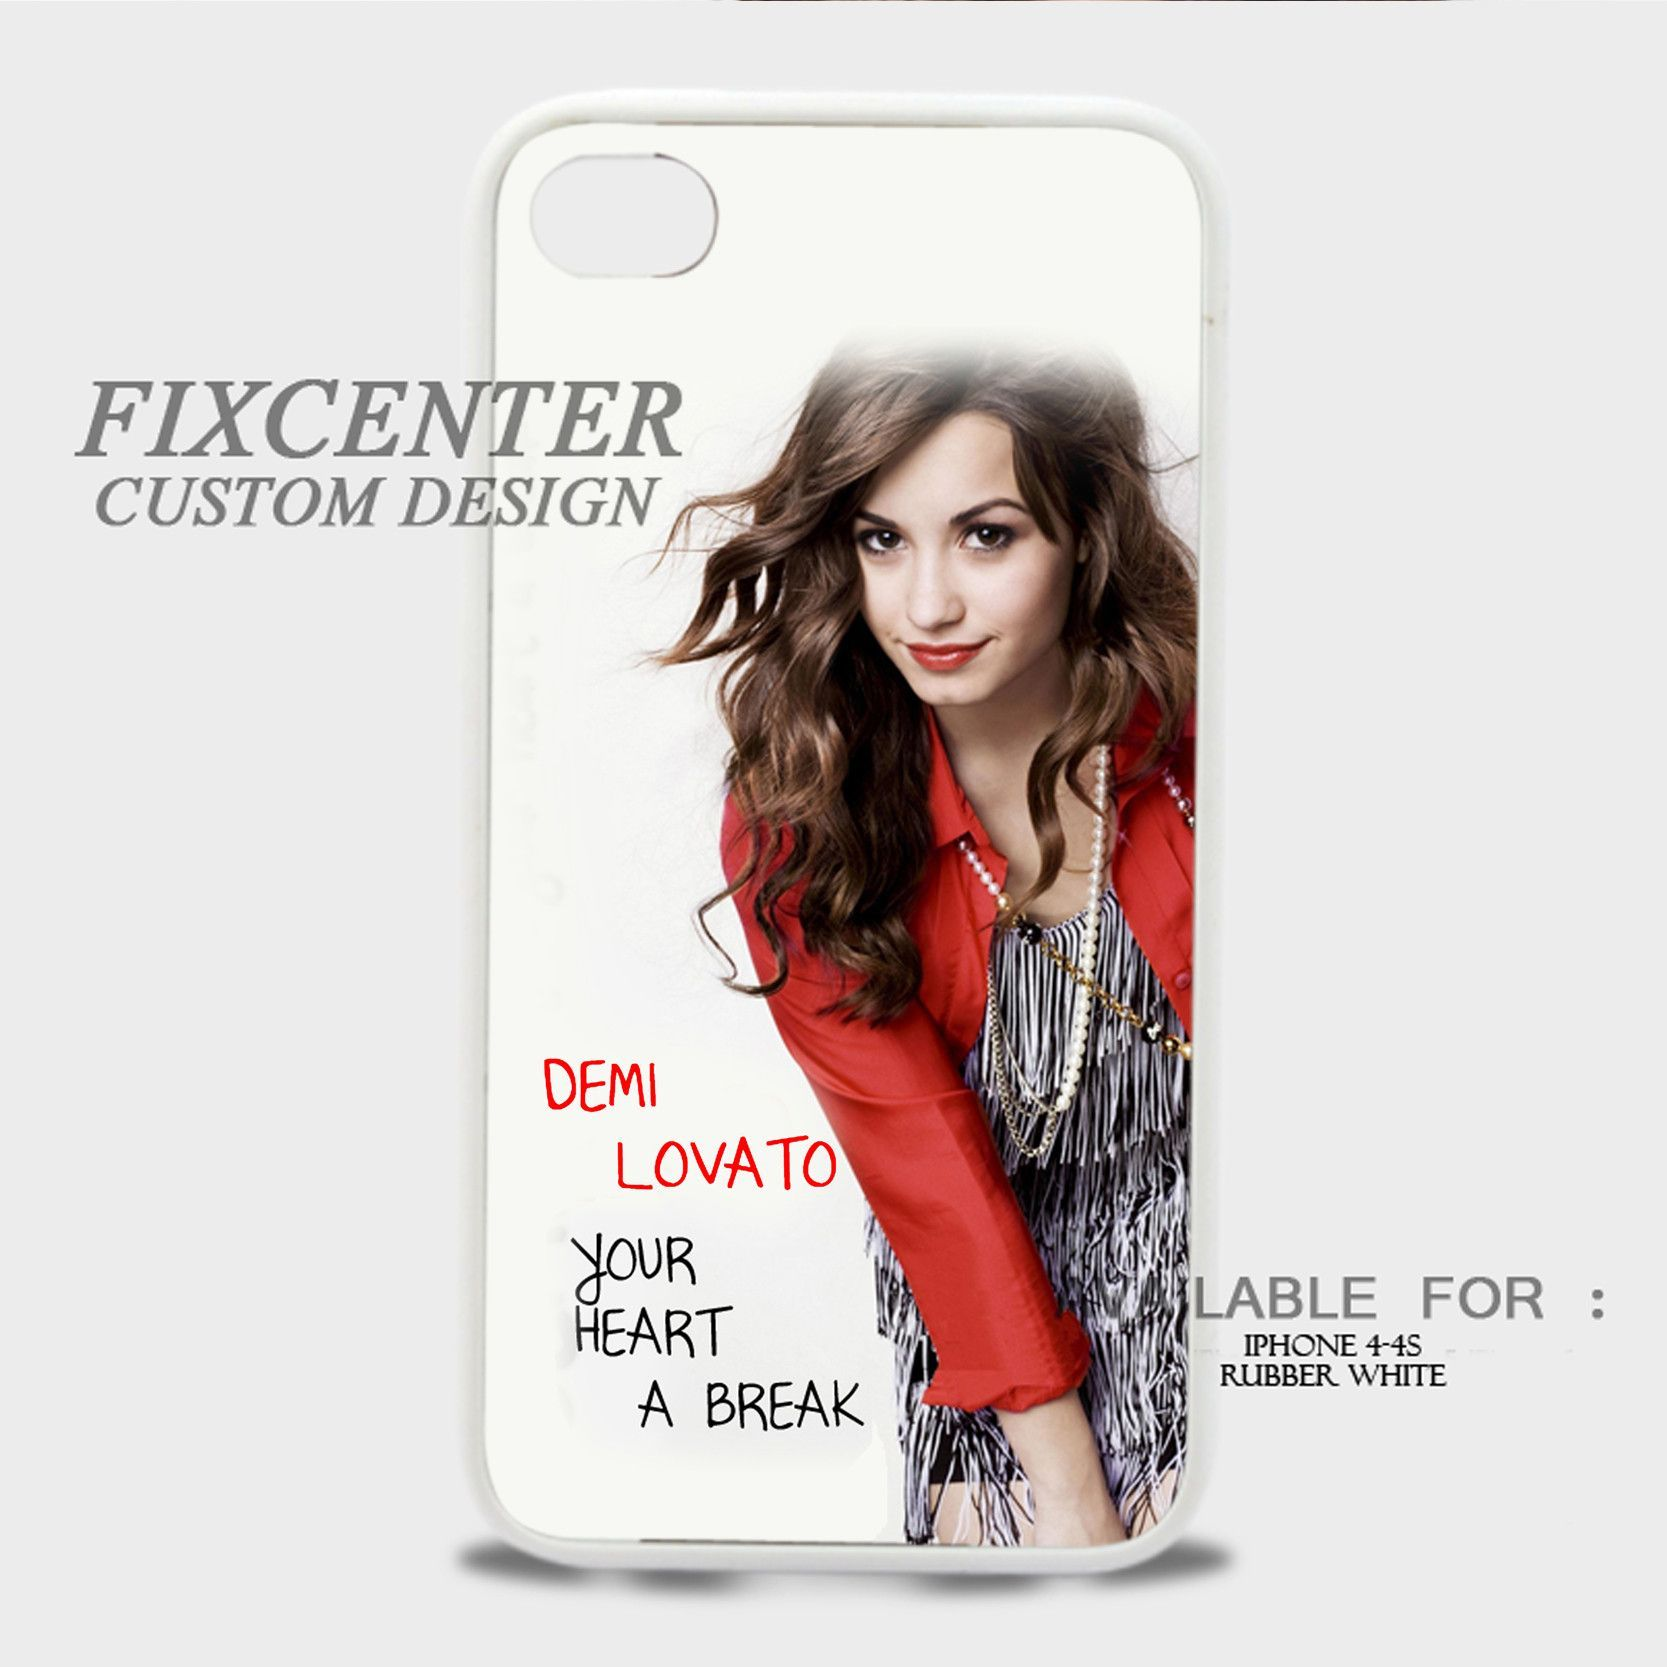 Demi Lovato Give Your Heart a Break Album - iPhone 4/4S Case